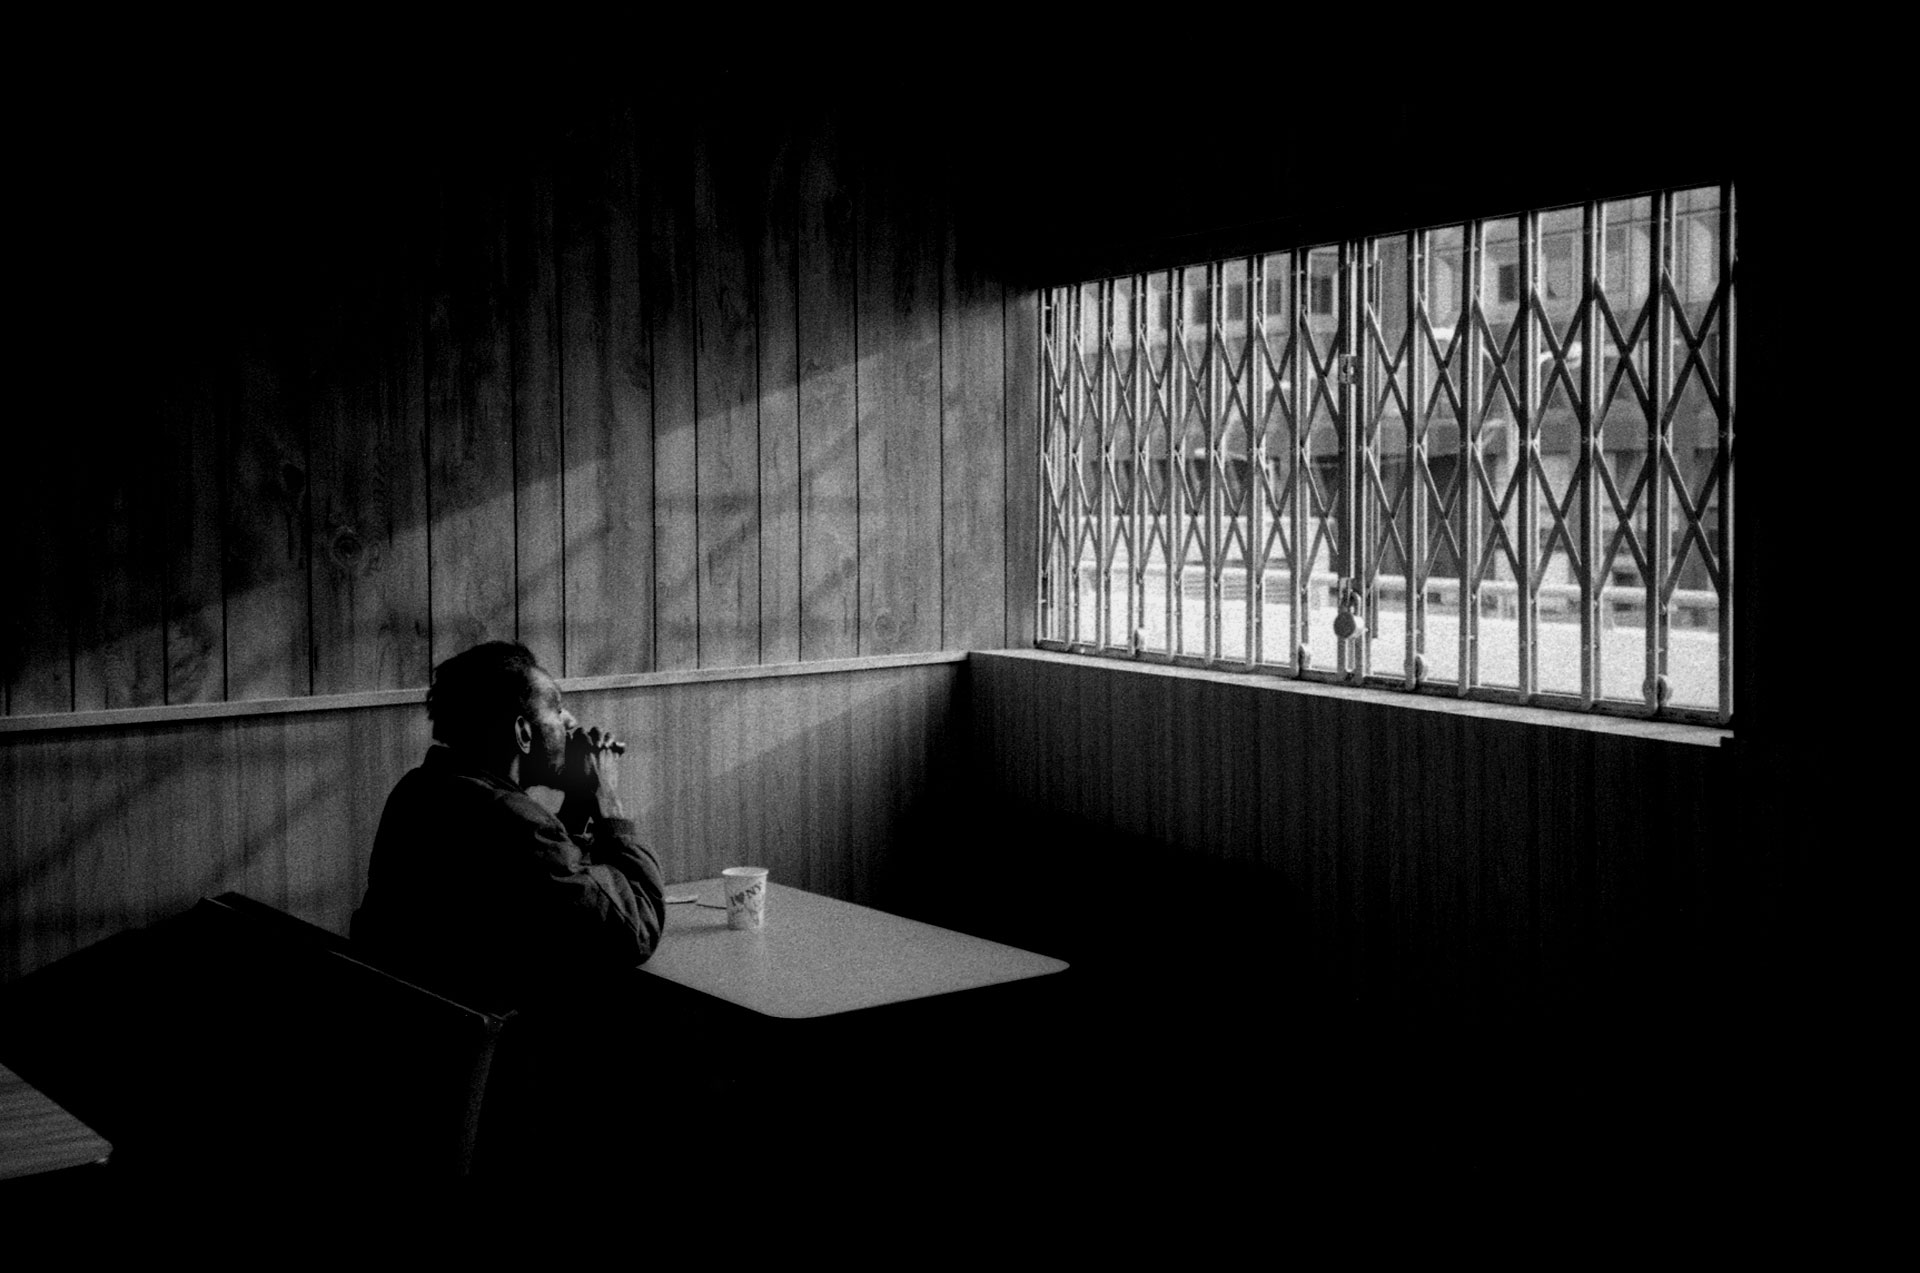 ©Robert Goldstein - .Man in Diner'. Black and White - man sits alone, staring out of a shuttered window